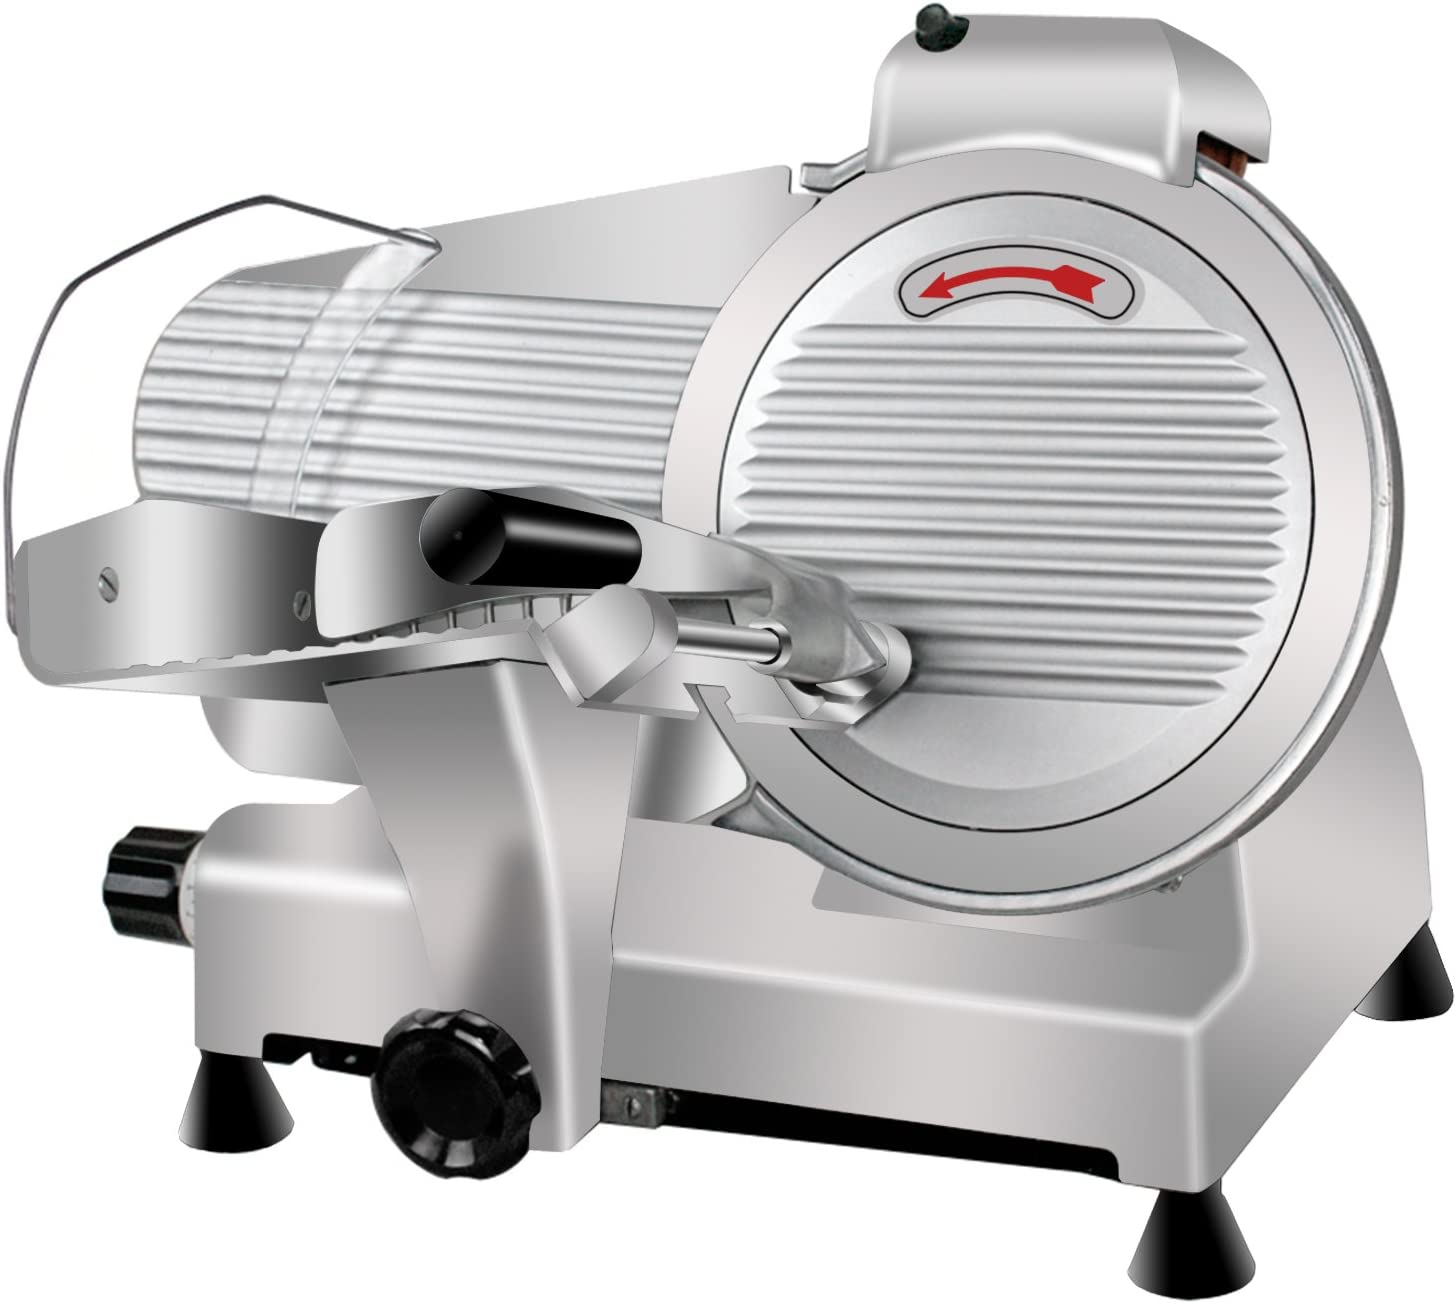 Save money Super Deal Commercial Stainless Steel Che Spring new work one after another Semi-Auto Slicer Meat